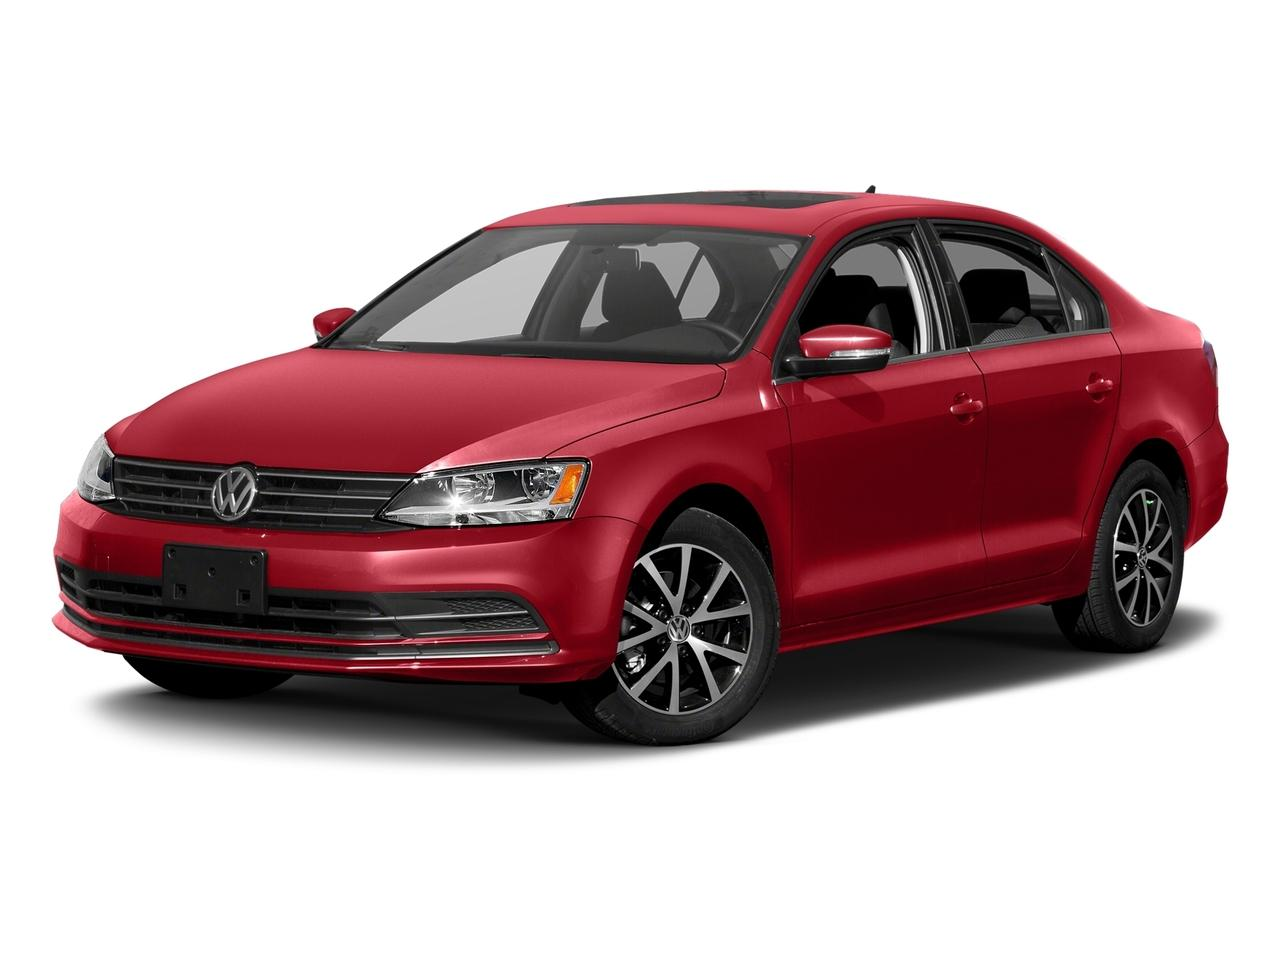 2017 Volkswagen Jetta Vehicle Photo in Oshkosh, WI 54904